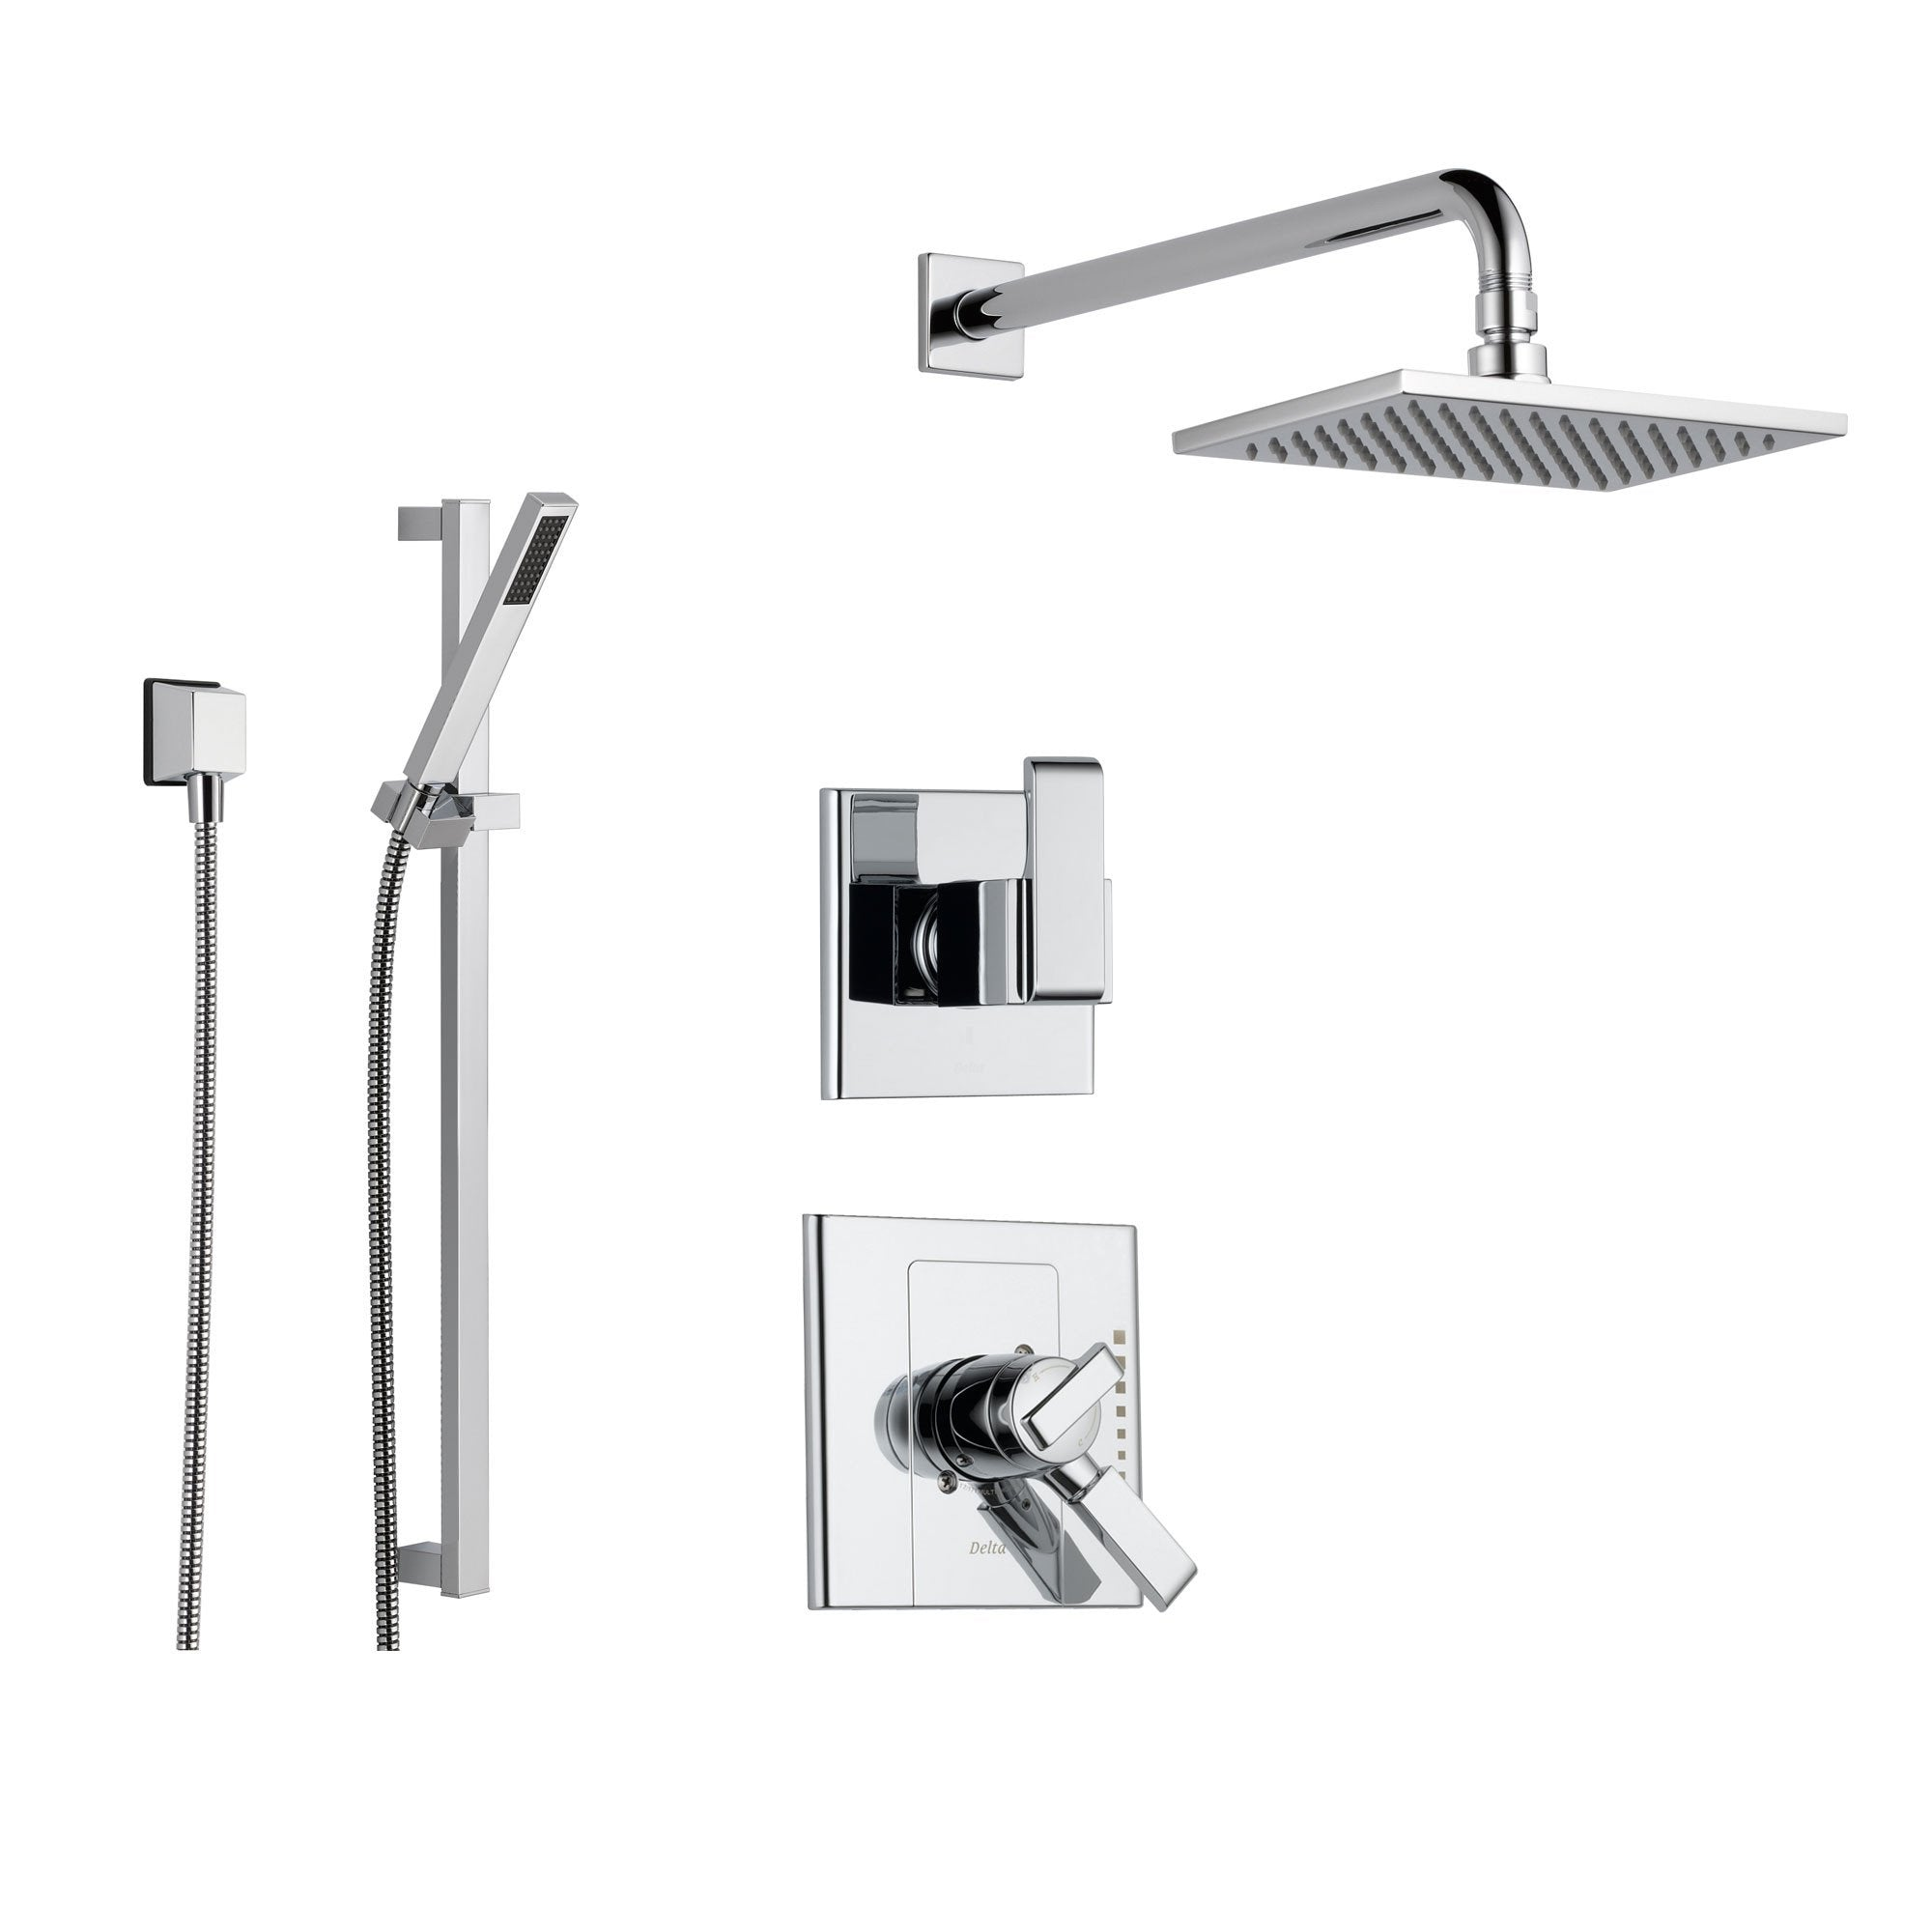 Ordinaire Delta Arzo Chrome Shower System With Dual Control Shower Handle, 3 Setting  Diverter,